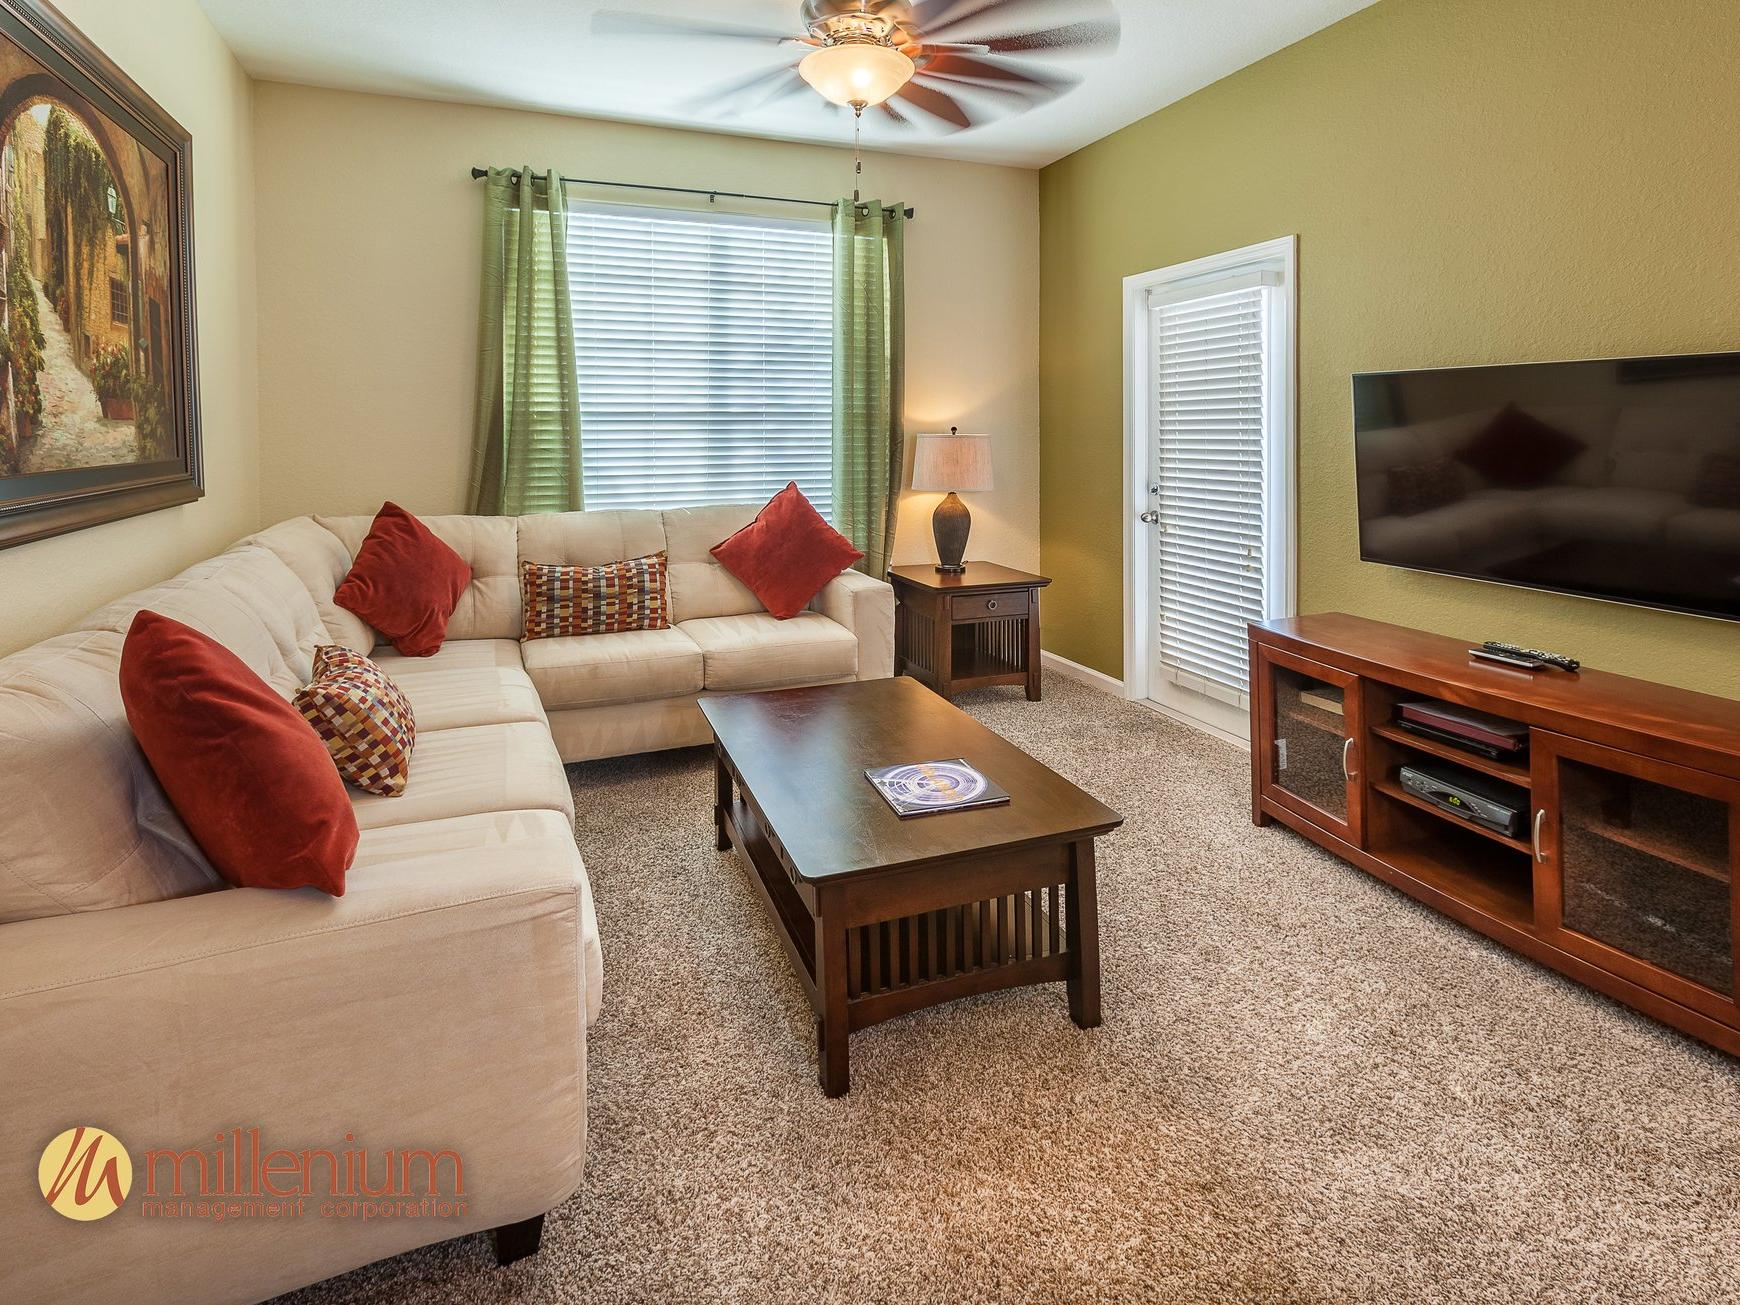 Living room with sectional sofa, coffee table and TV